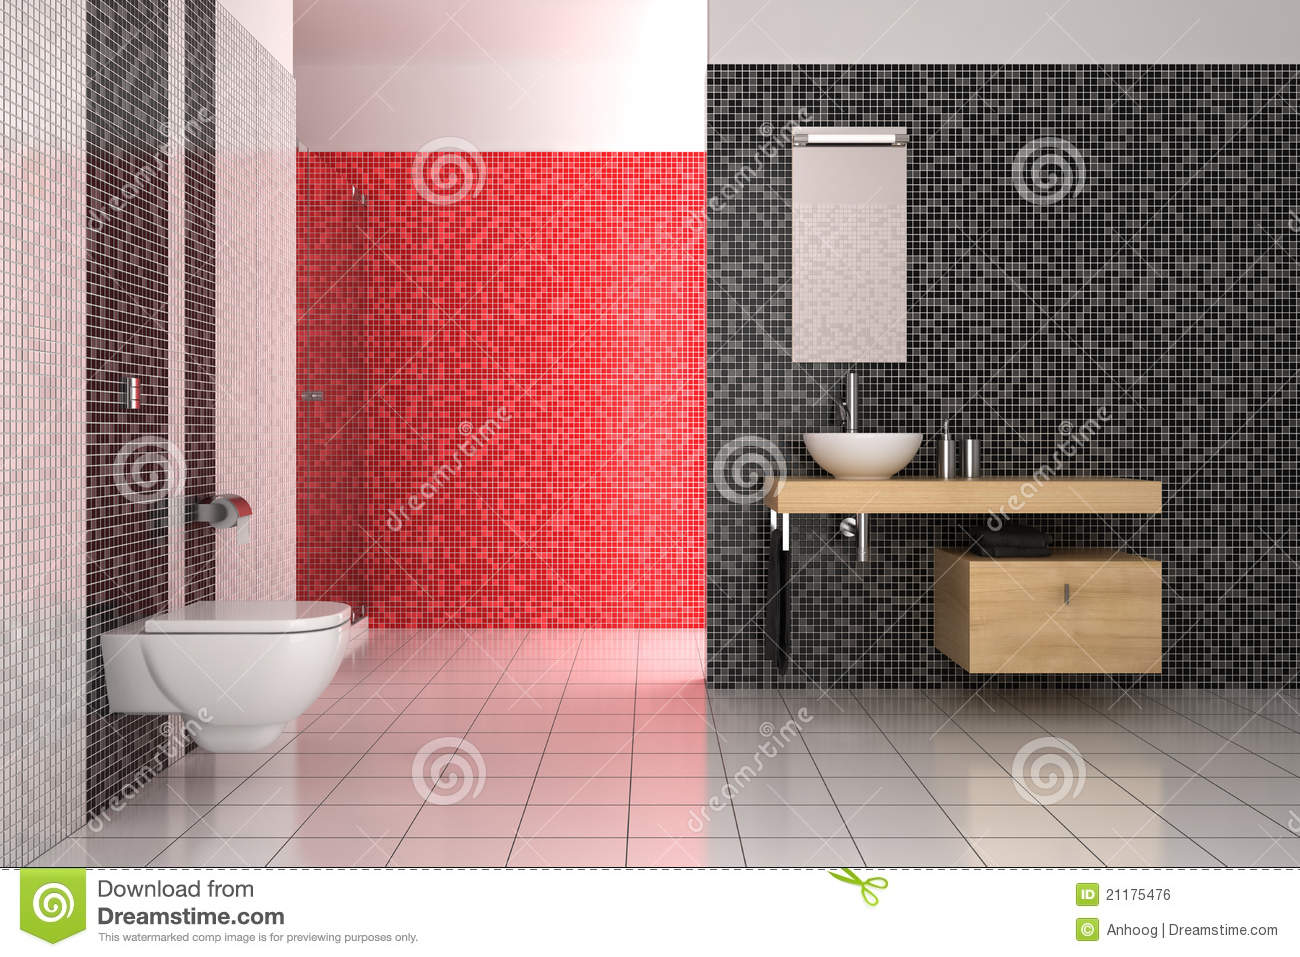 Red bathroom tile kitchen tiles high wycombe bathroom for Bathroom design high wycombe